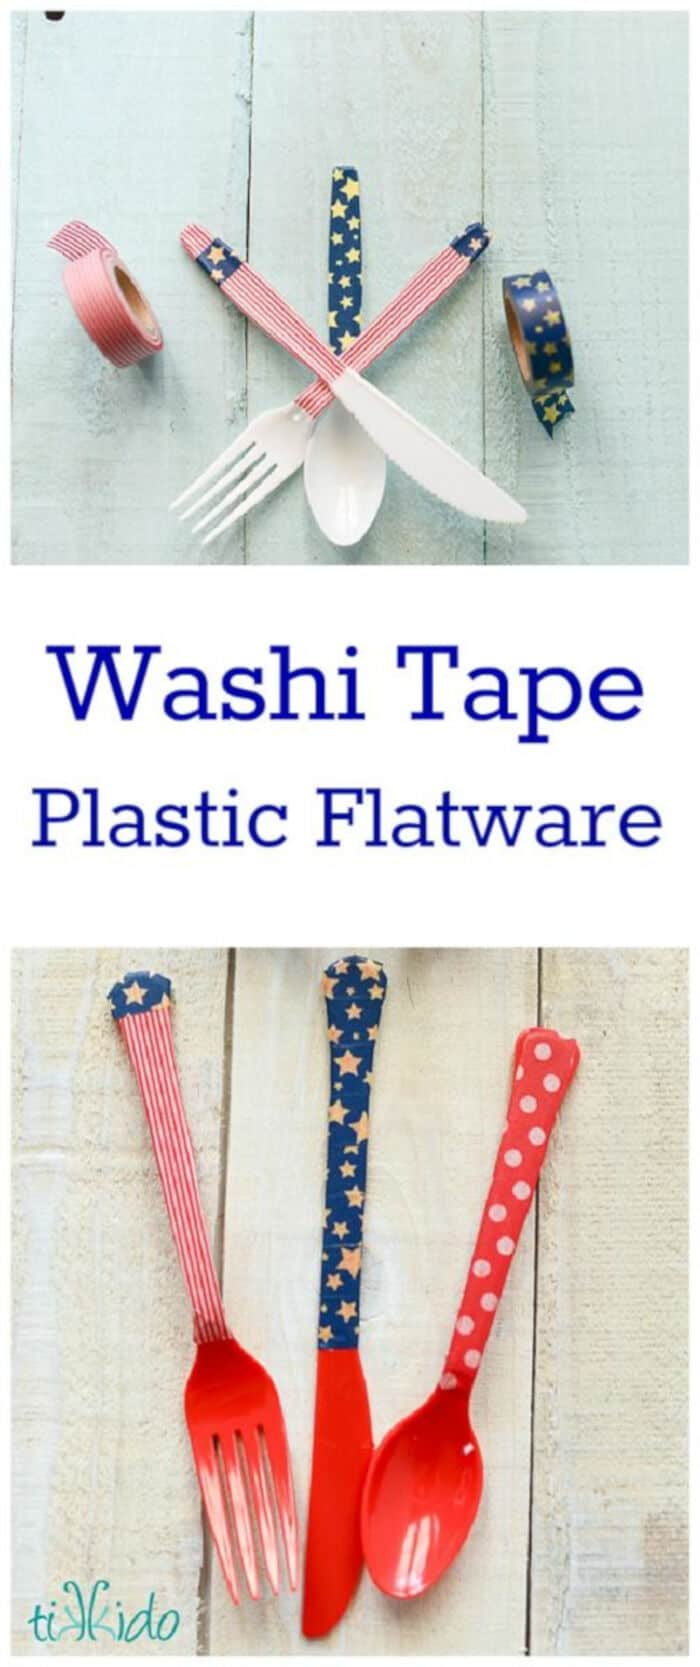 Easy Decorated Silverware Tutorial Using Washi Tape by Tikkido